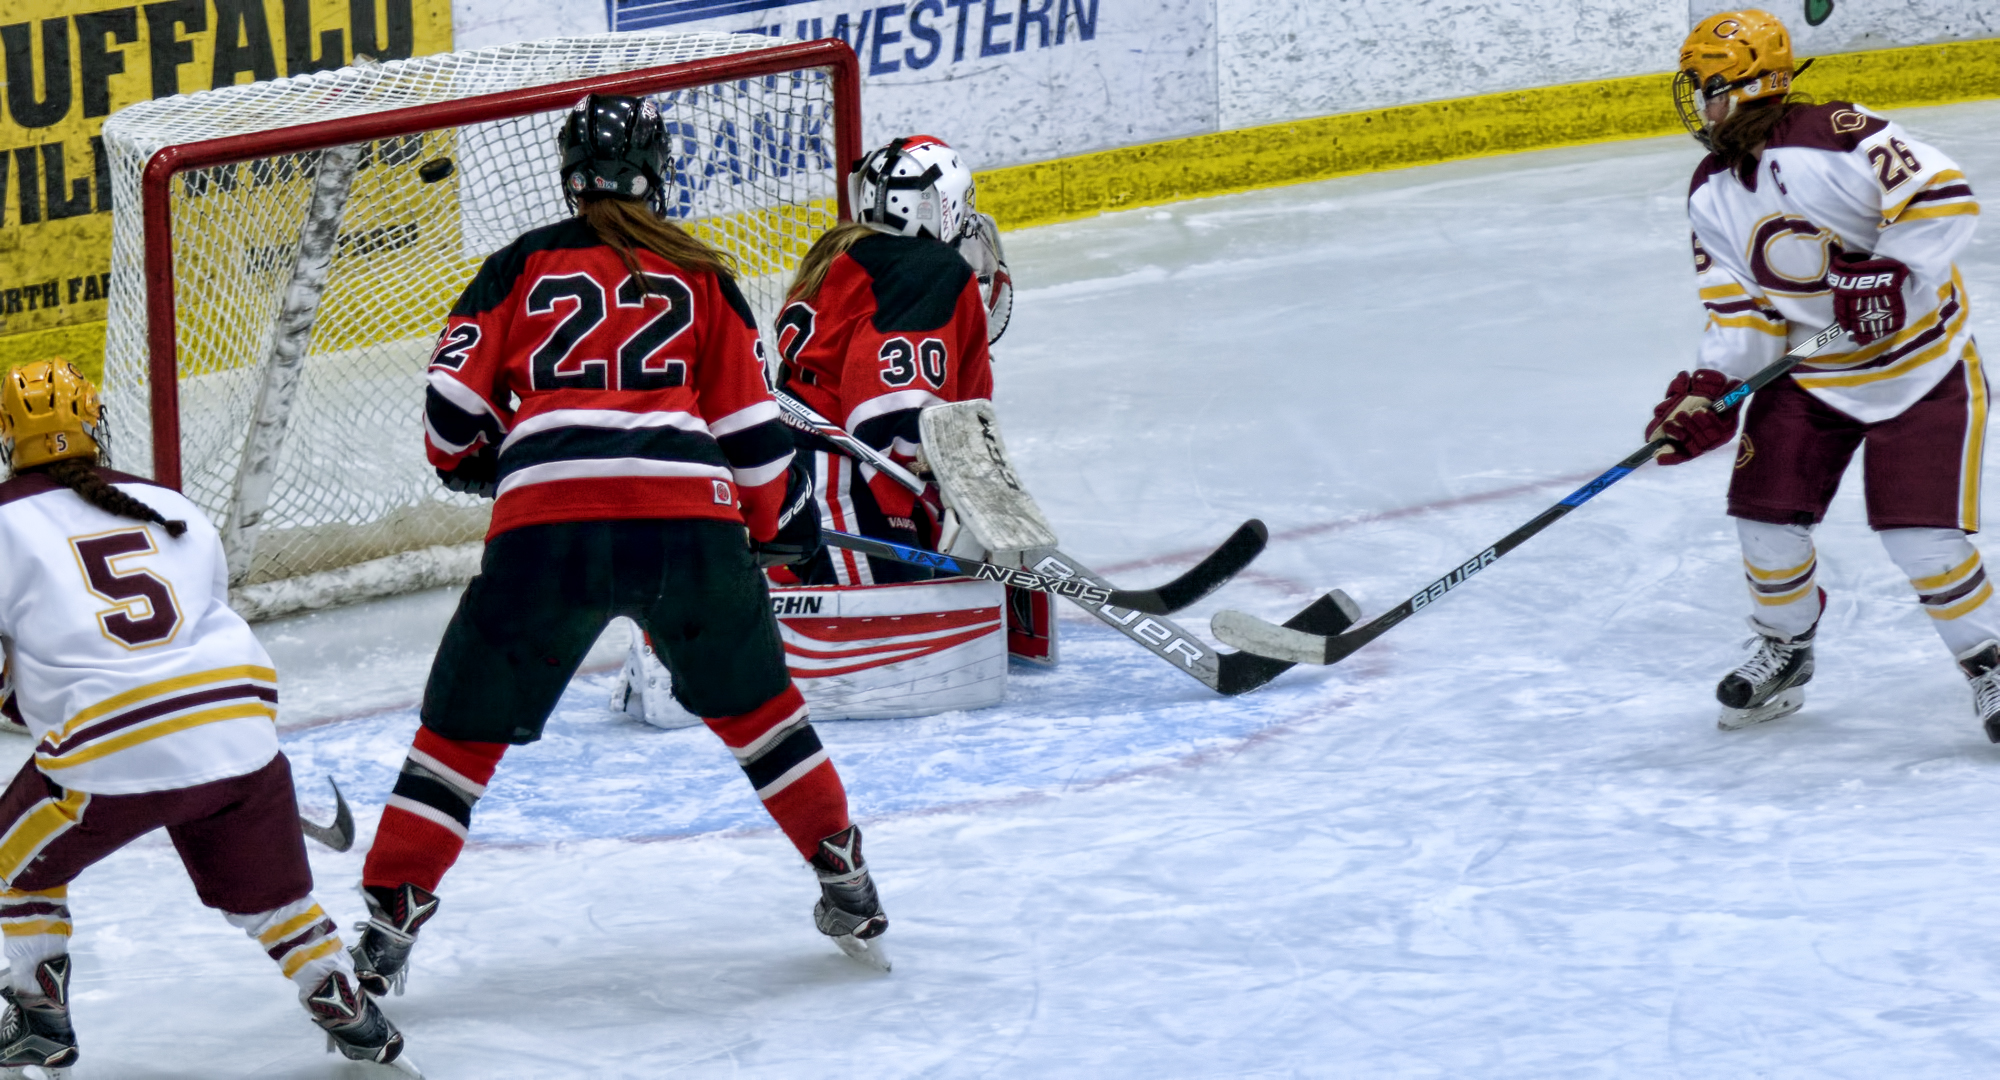 Tori Davis (#26) and Josee Lundgren (5) watch the puck fly into the net after teammate Callie Fagerstrom's shot in the third period against #6 Wis.-River Falls.